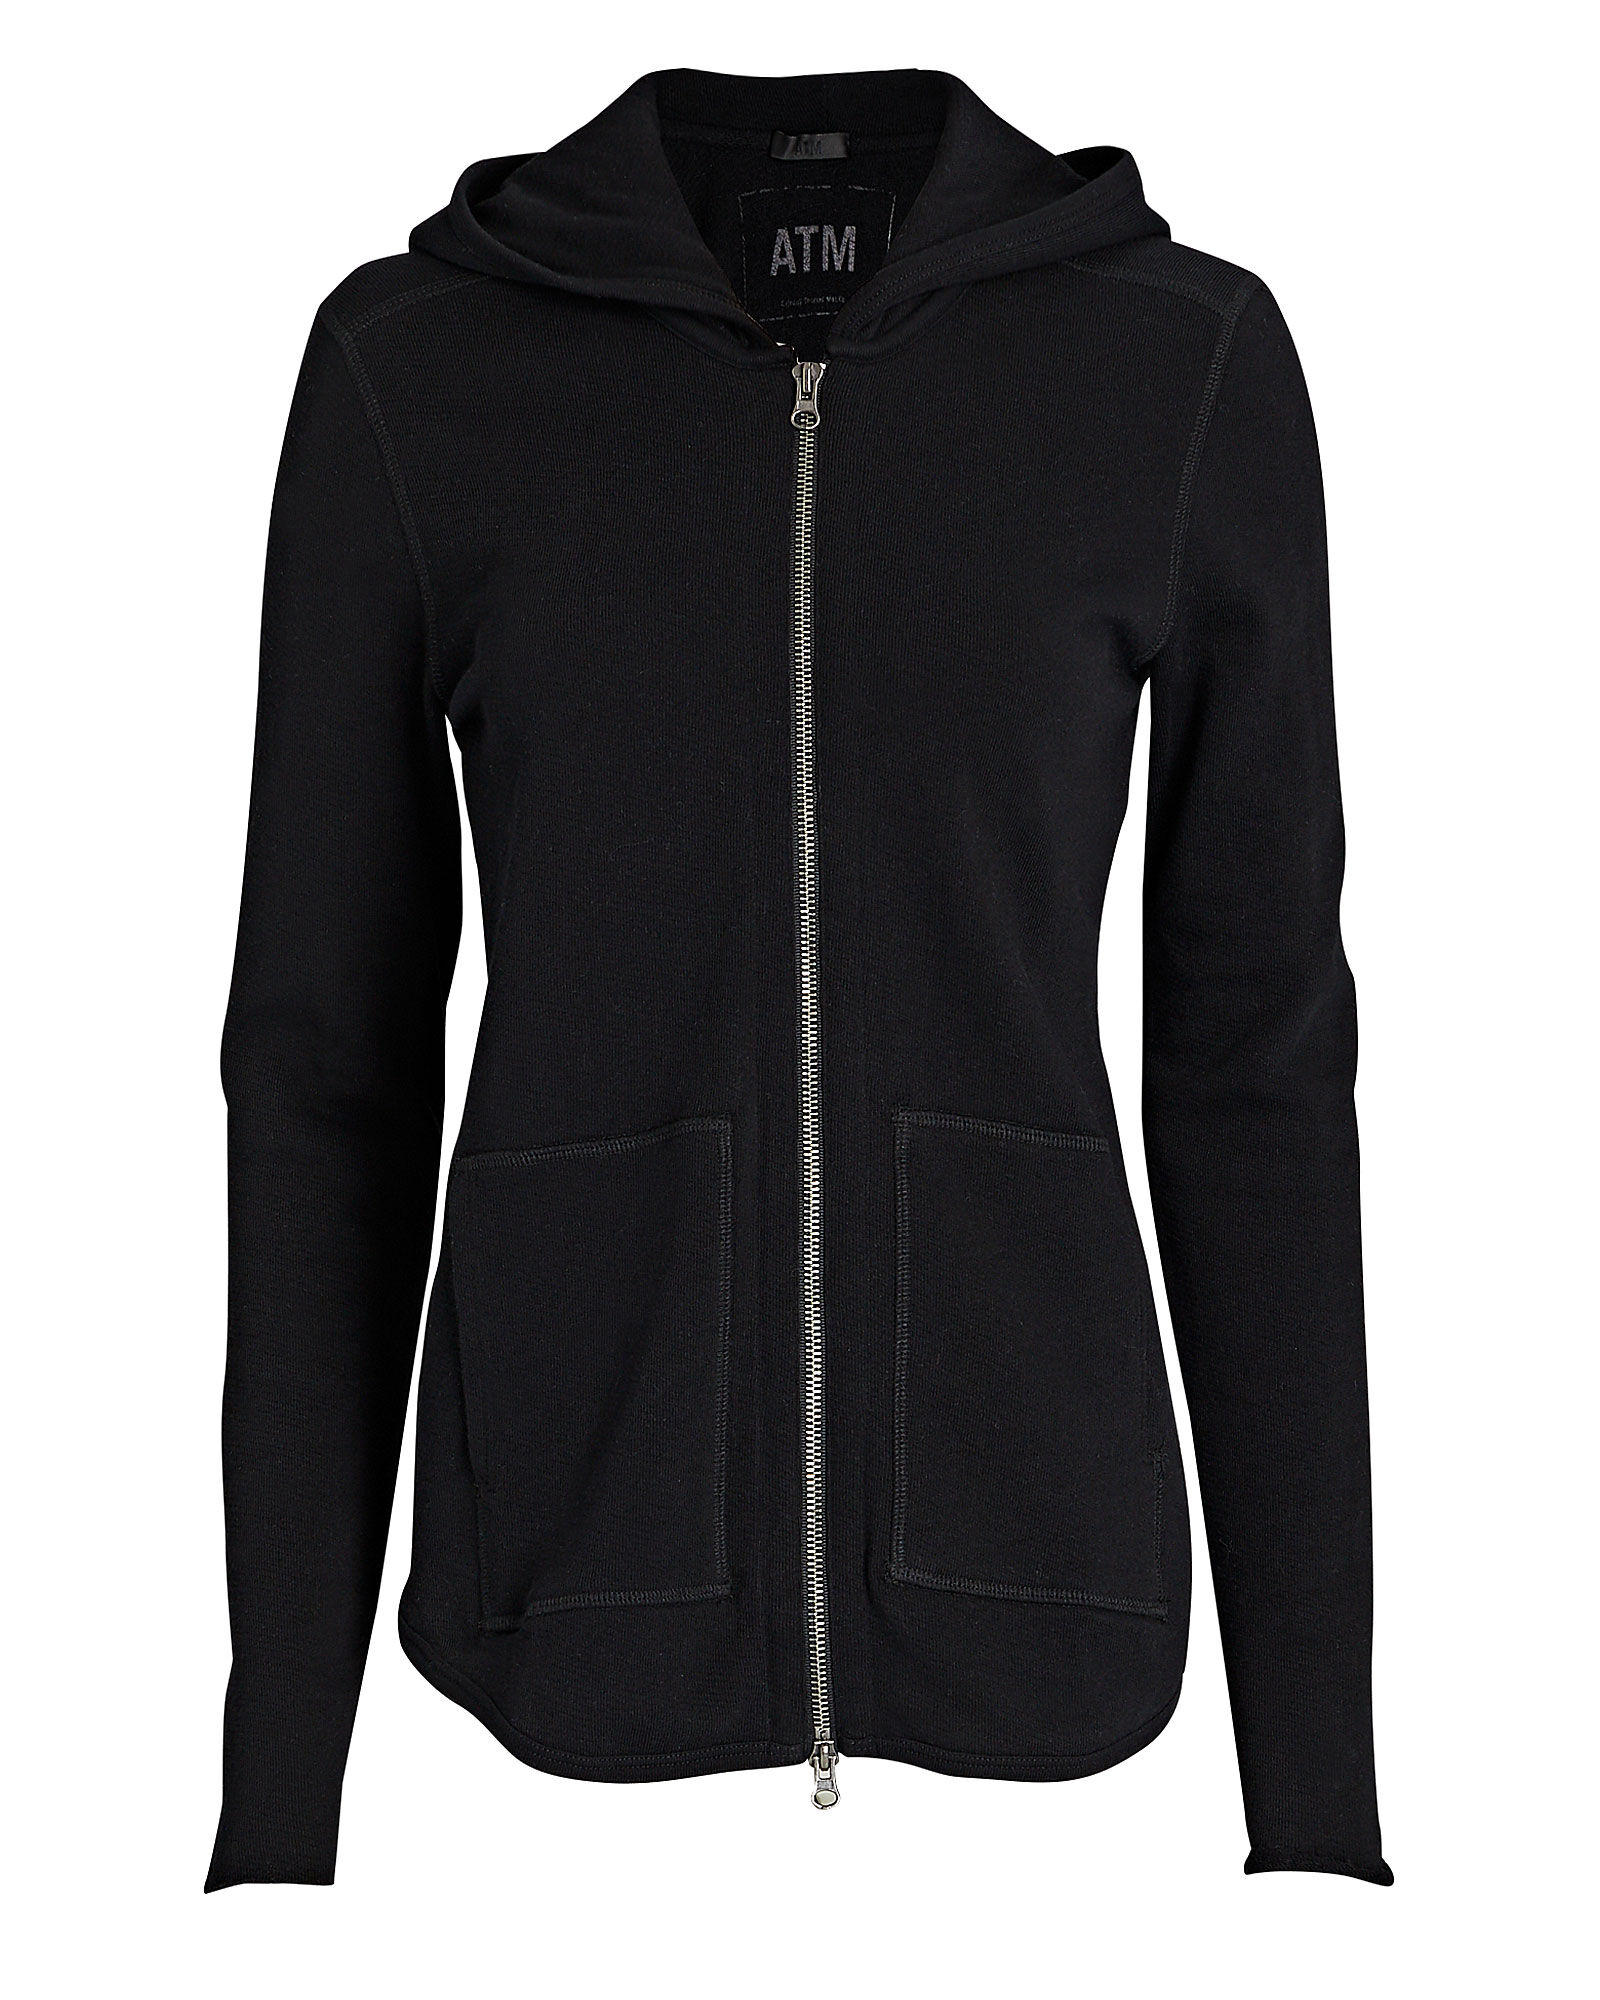 French Terry Zip-Up Sweatshirt, FADED BLACK, hi-res